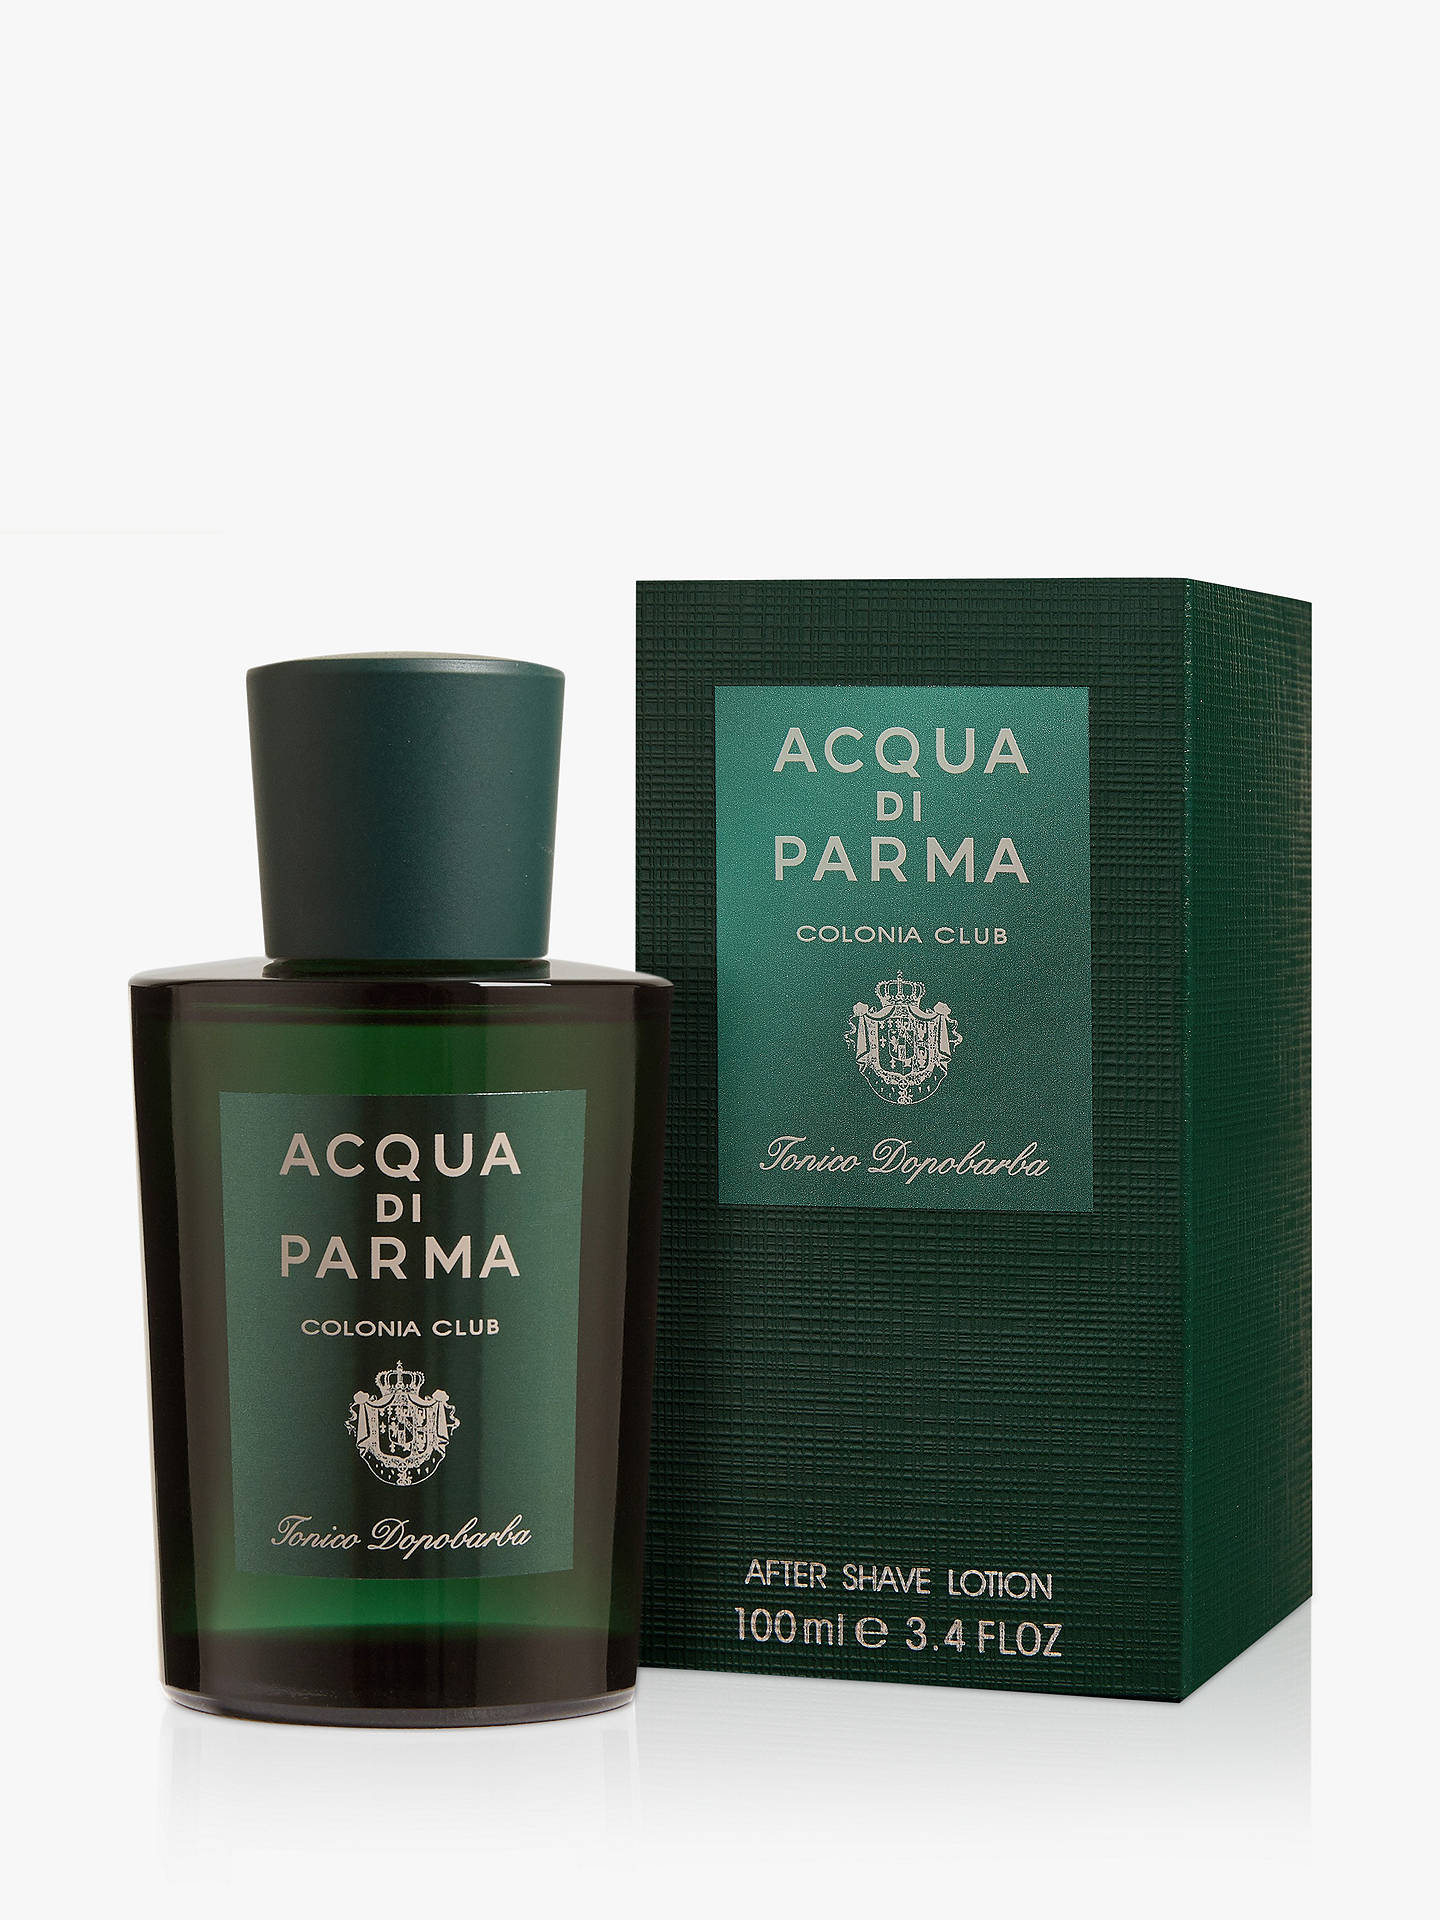 Buy Acqua di Parma Colonia Club After Shave Lotion, 100ml Online at johnlewis.com